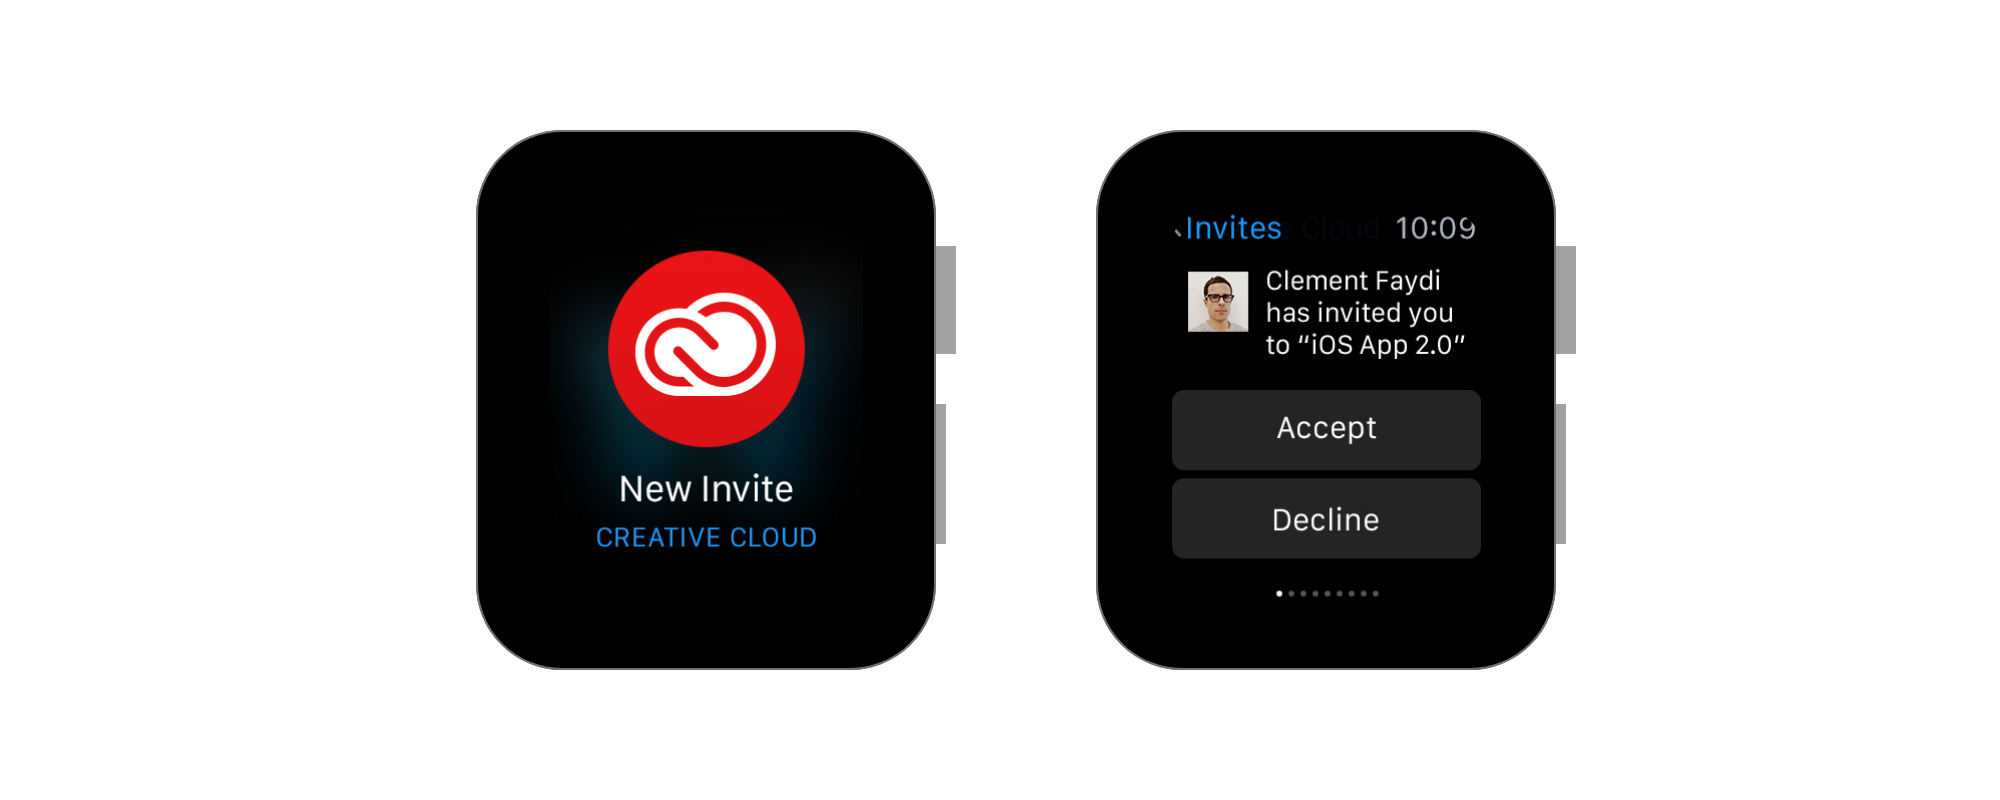 Invite - Short Look / Long Look Notification for a New Invite.A detailed notification with the ability to accept or decline an invite for collaboration.